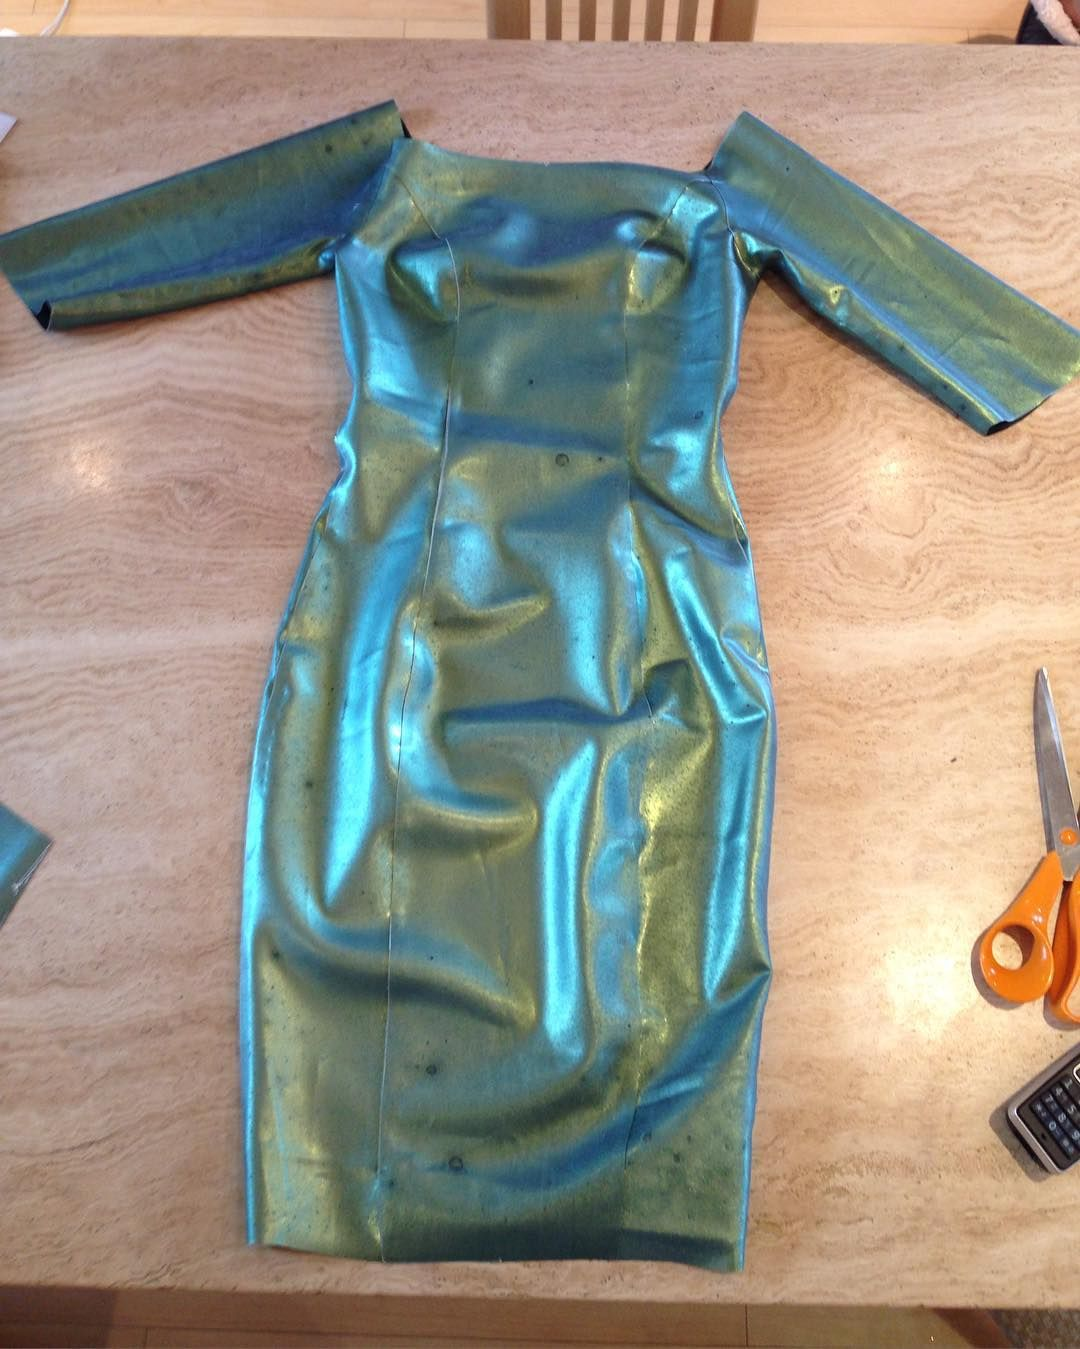 2d9787b5ea Excited about this green gold blue colour change off the shoulder dress  I've just made. #yummygummylatex #yummygummy #latex #colourchange  #pencildress ...